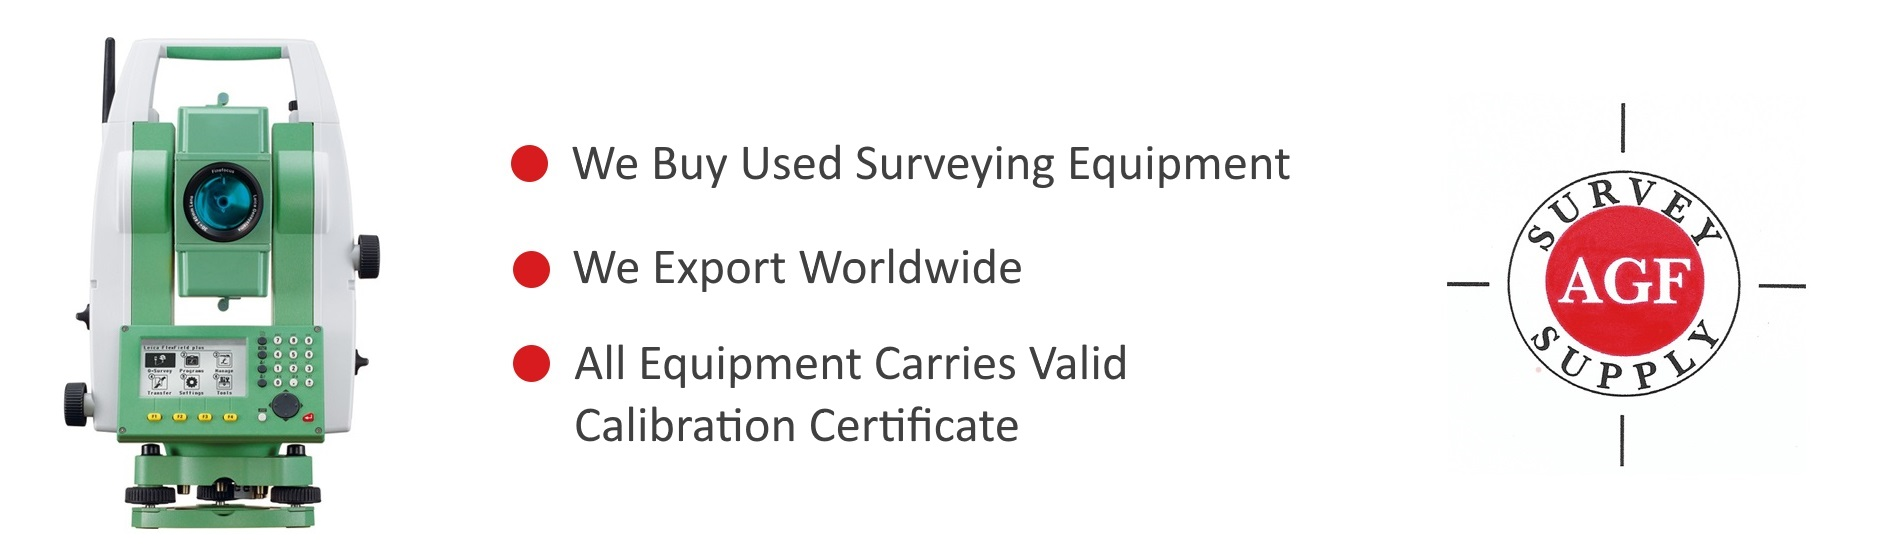 Used Surveying equipment bought and sold